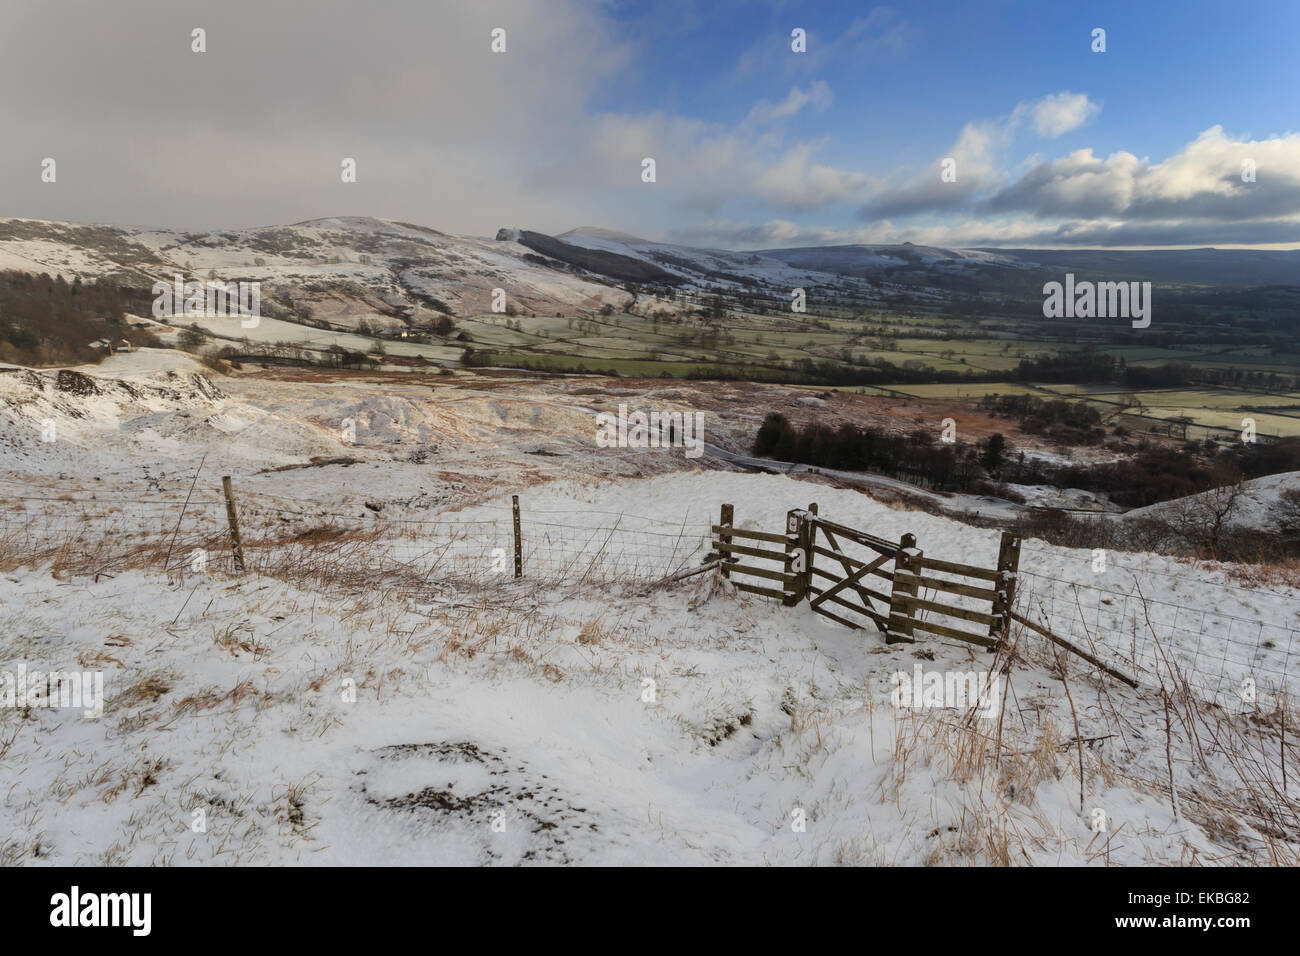 Hill snow over Back Tor and Lose Hill on the Great Ridge, from Mam Tor landslip, Castleton, Derbyshire, England, - Stock Image